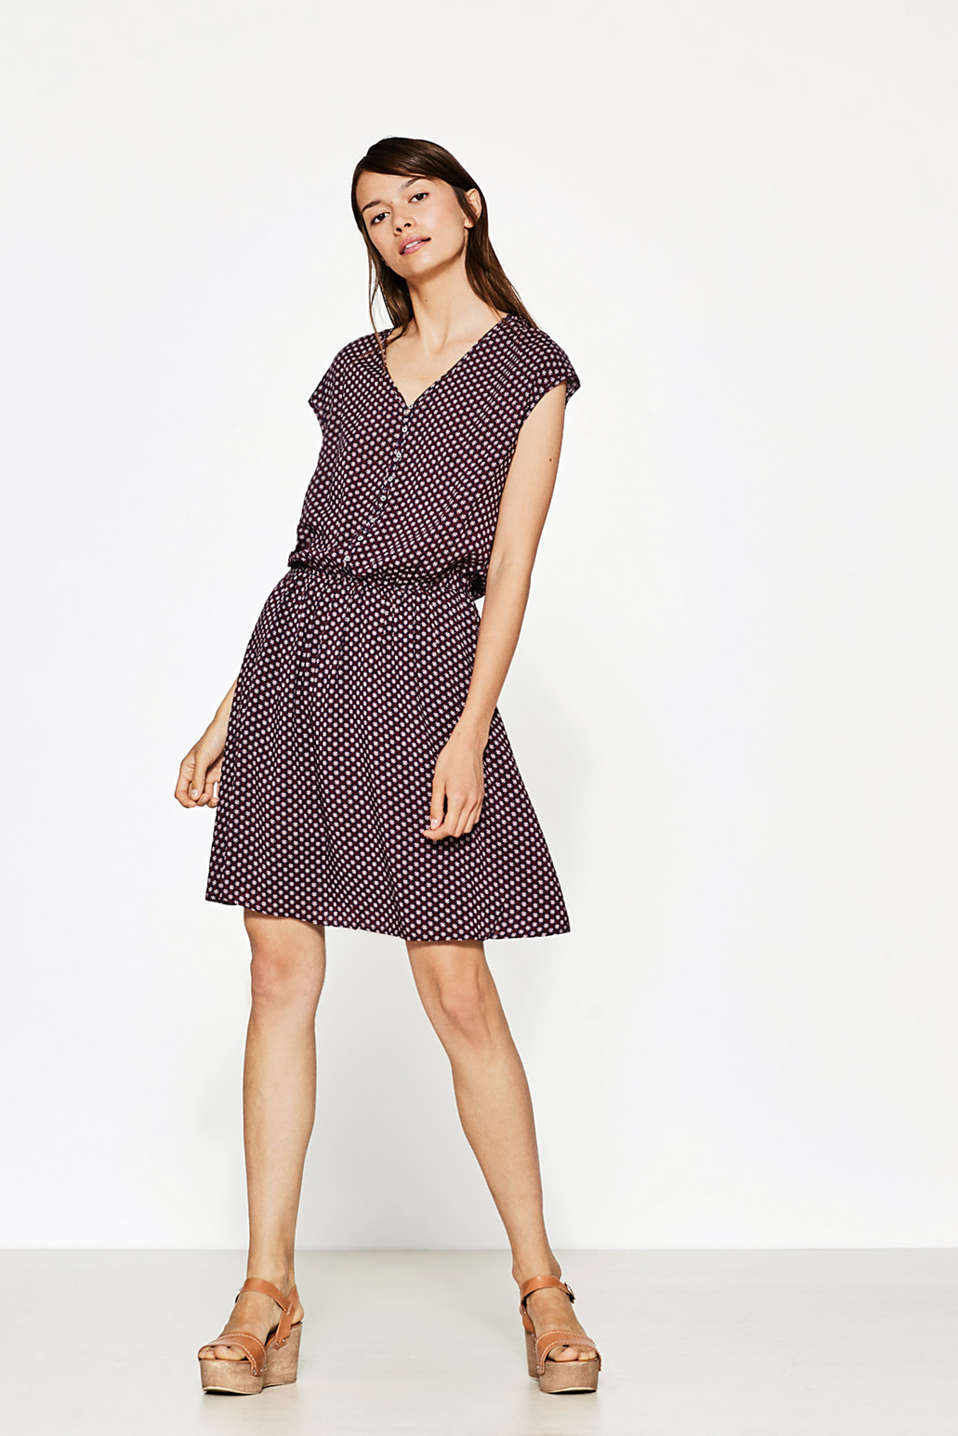 Flowing print dress with button placket